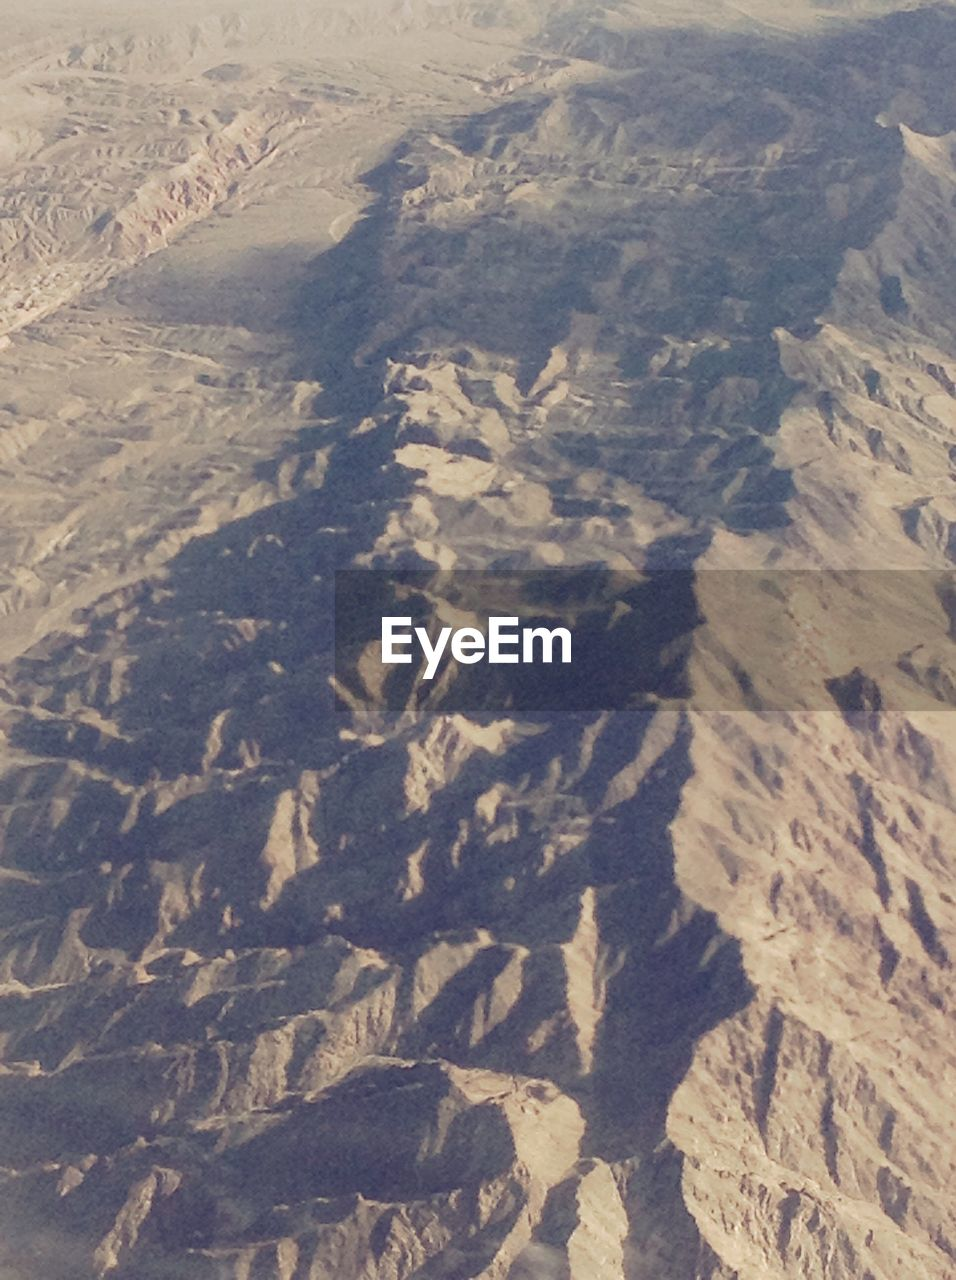 aerial view, nature, landscape, day, outdoors, no people, scenics, pattern, arid climate, backgrounds, beauty in nature, airplane